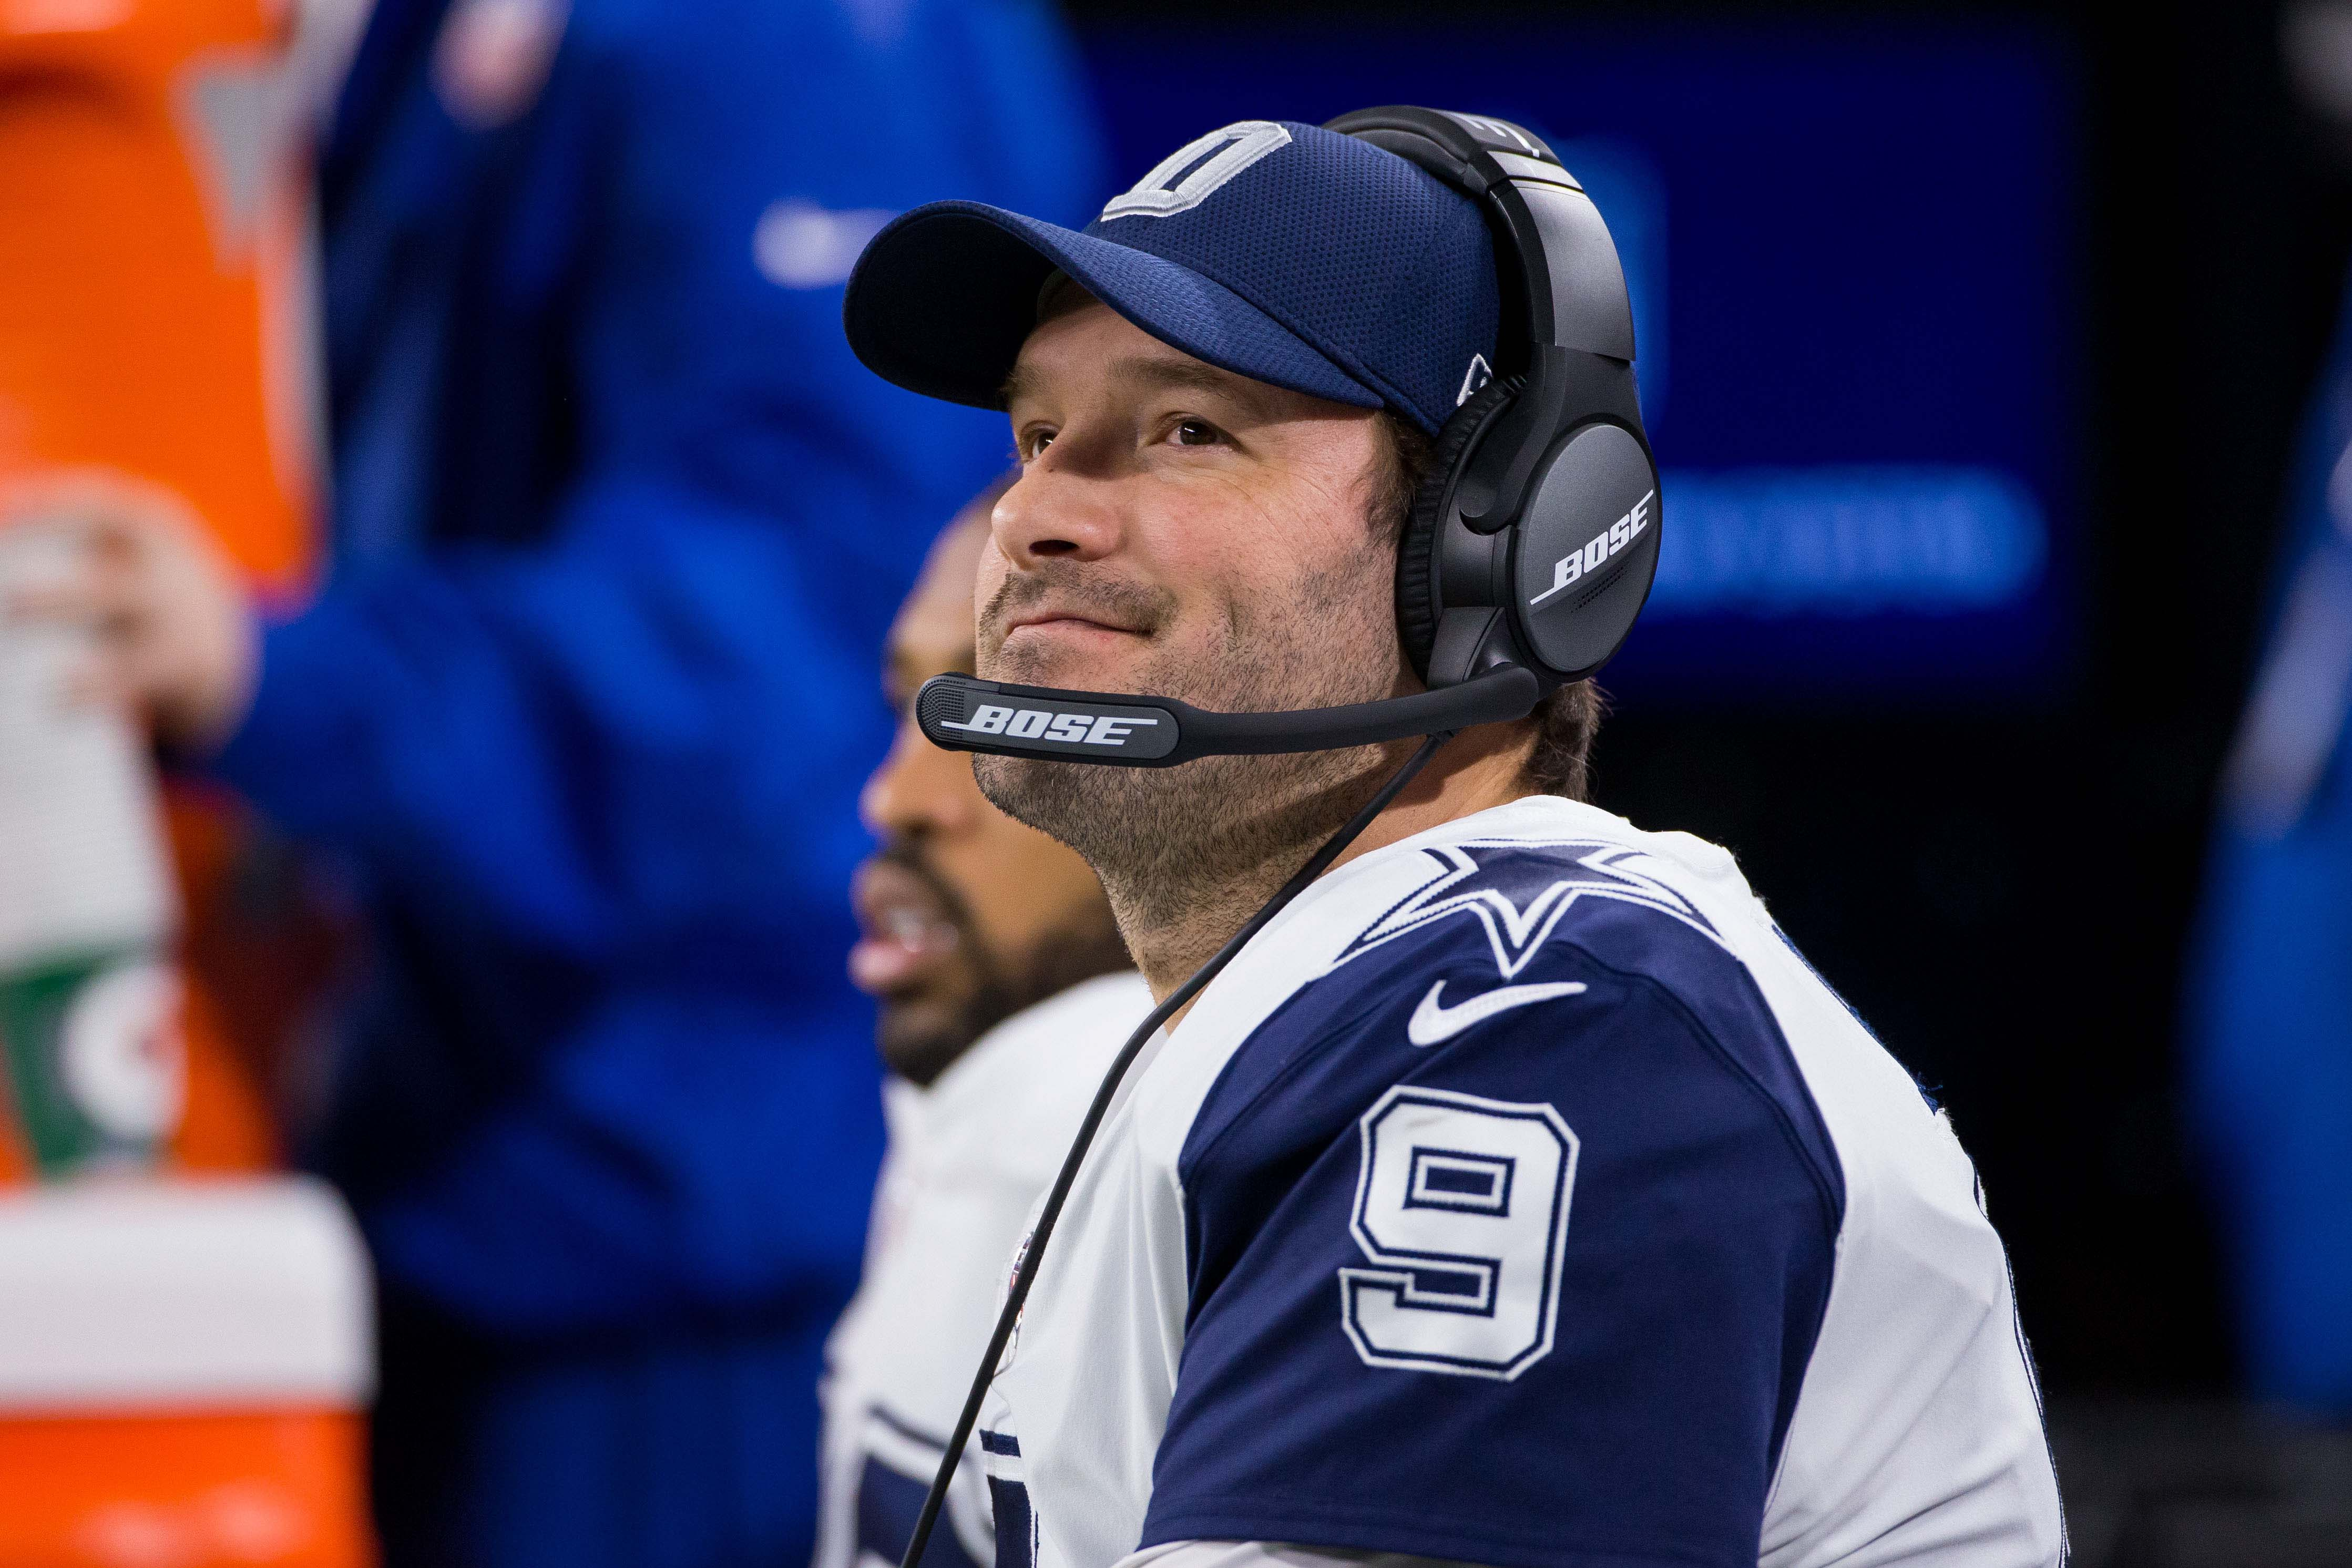 Jerry Jones makes statement after releasing Tony Romo